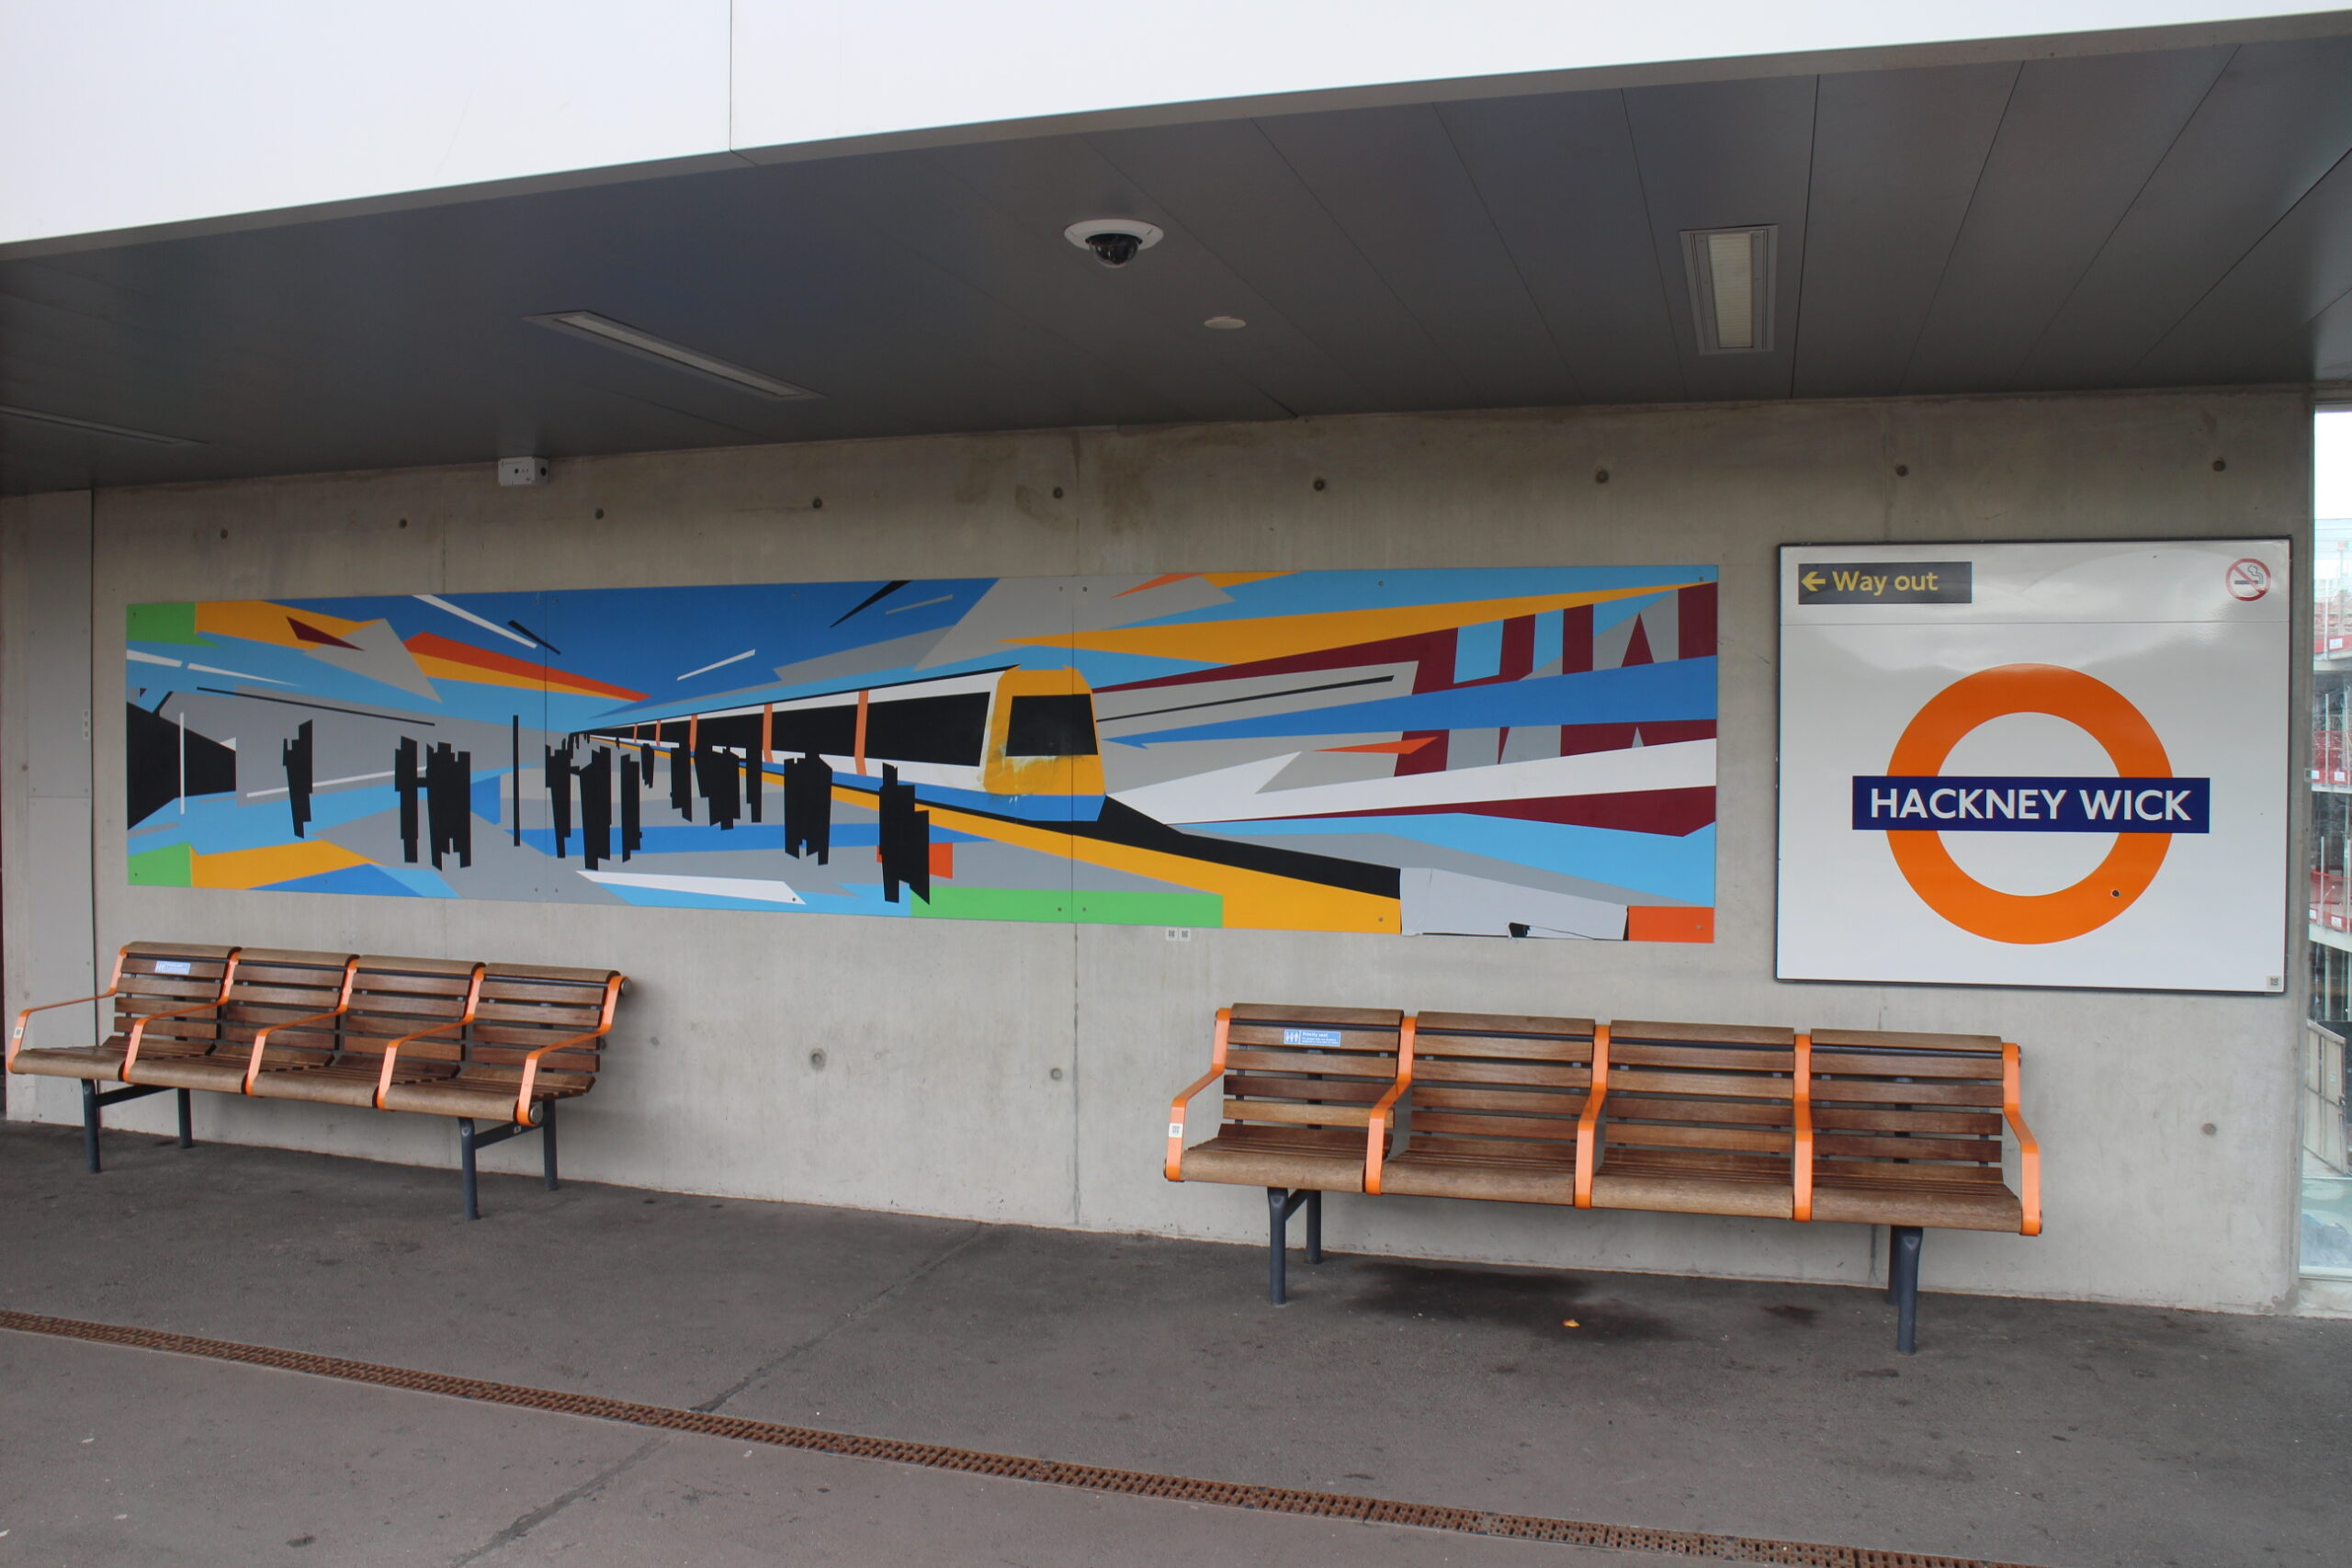 Image is of a mural commissioned by Network Rail for Hackney Wick Station created by a collaboration between John Atherton and a local street artist.